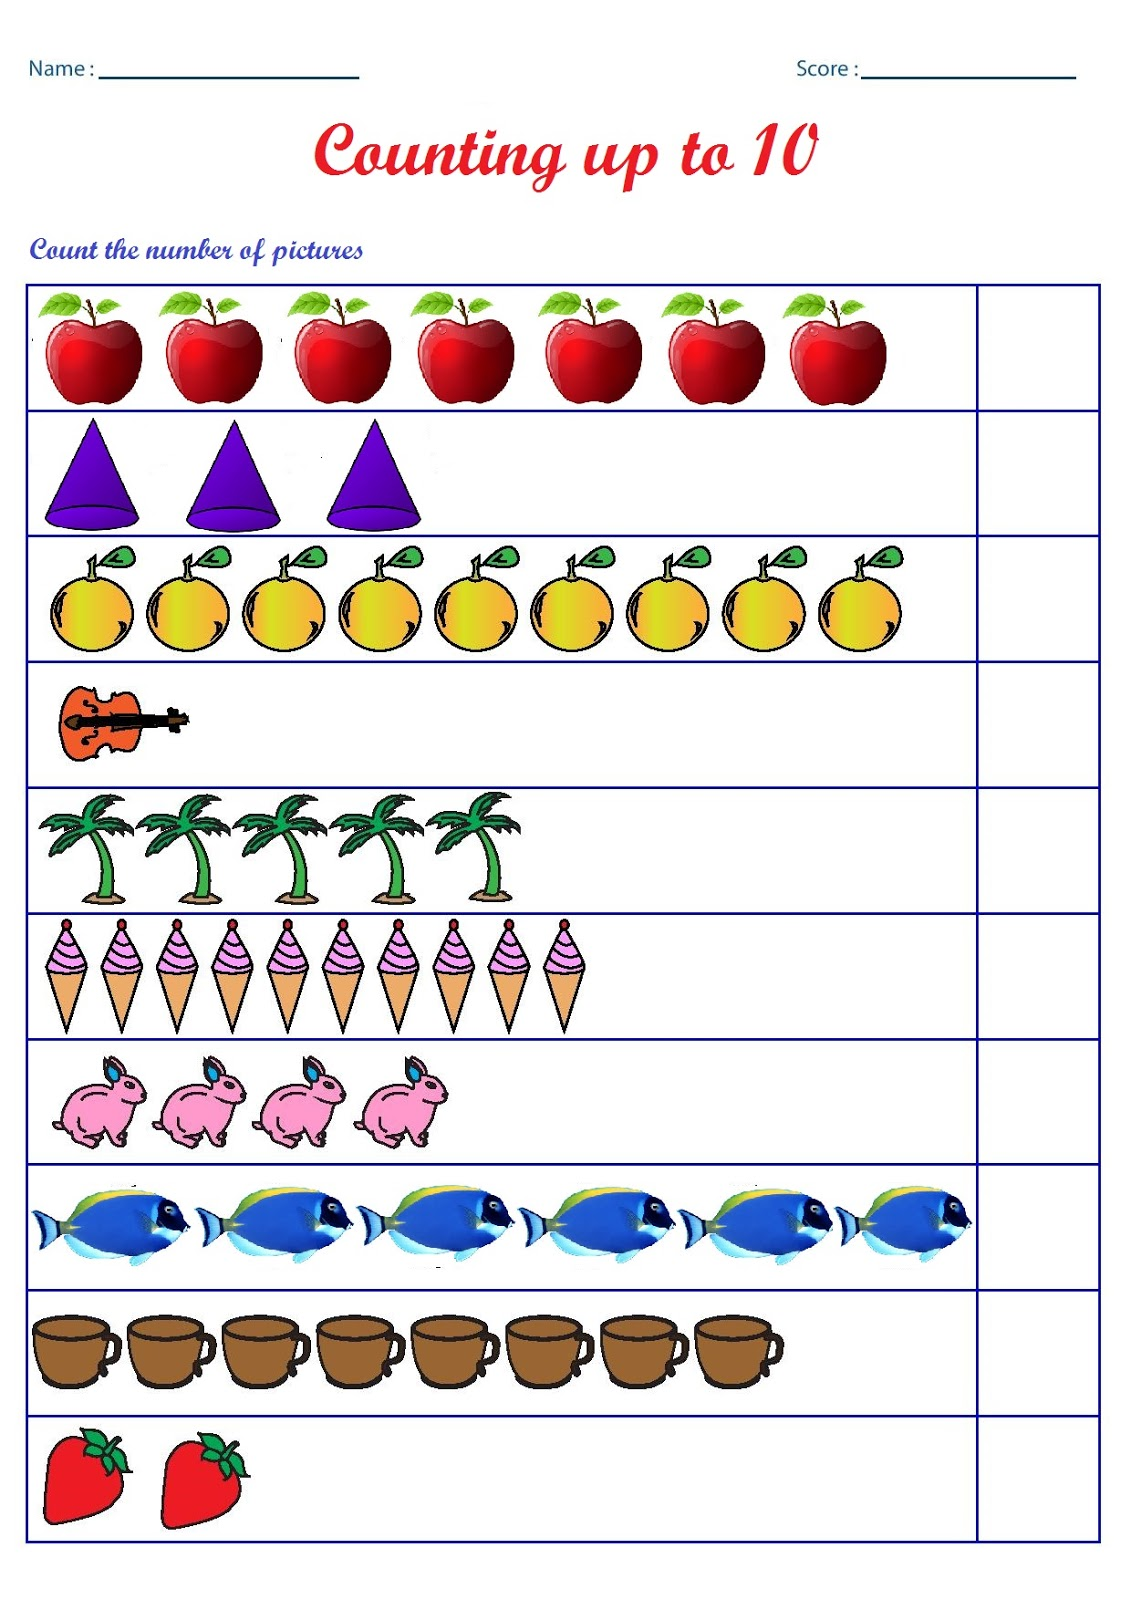 Kindergarten Worksheets Counting Worksheets Count the number of – Kindergarten Counting Worksheets